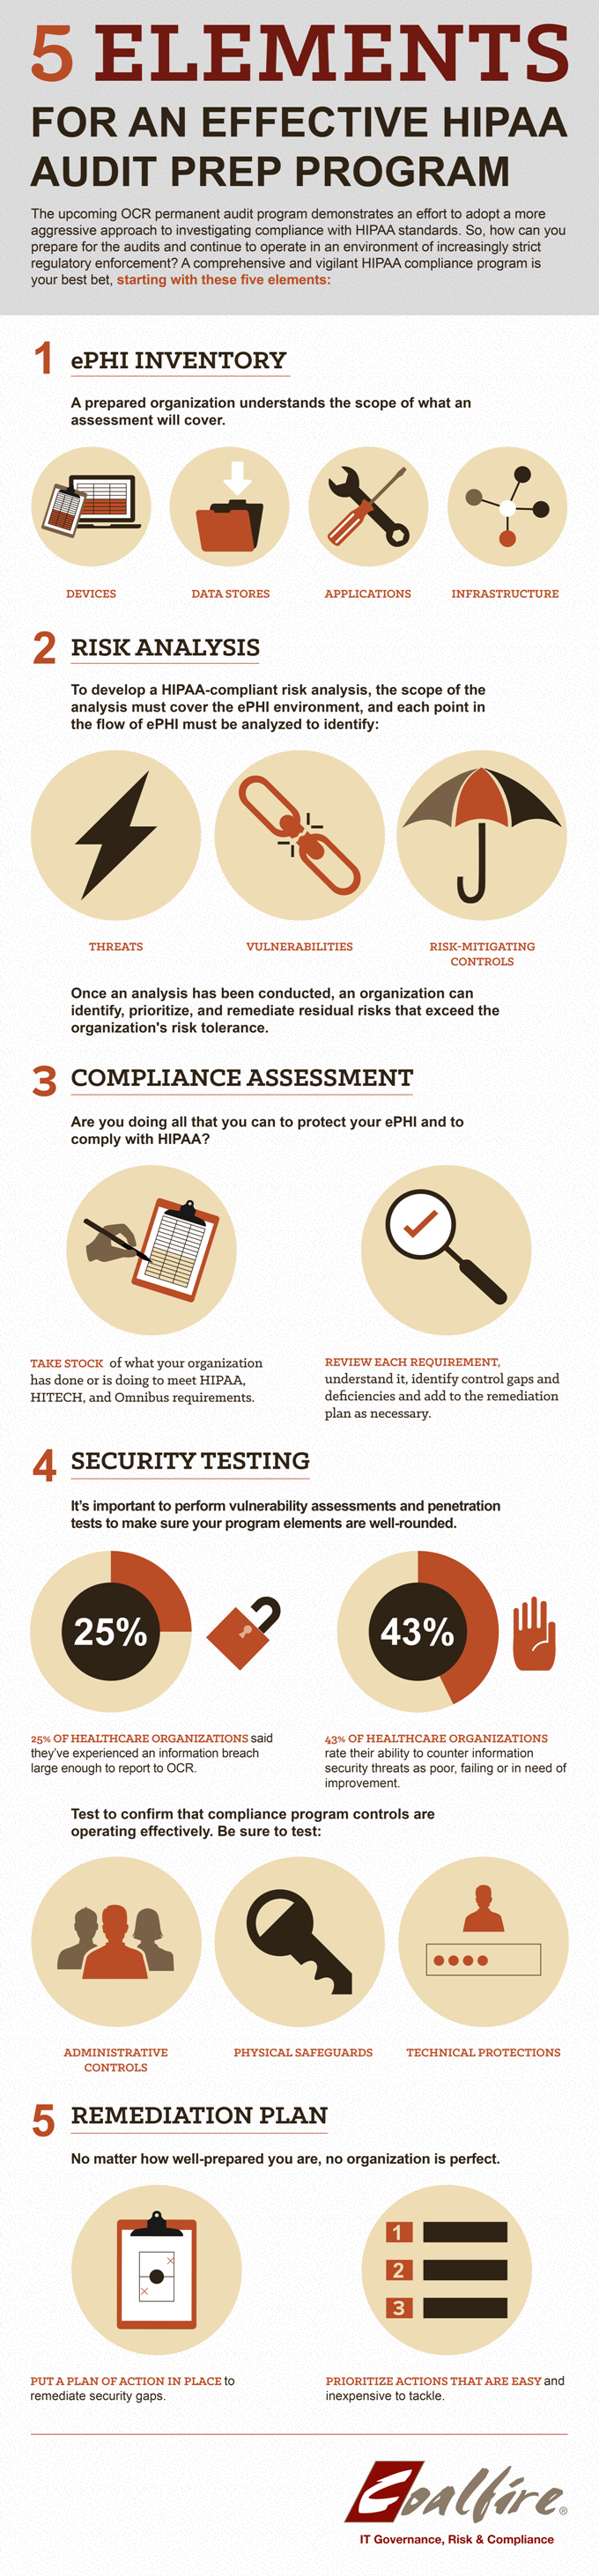 5-Elements-of-an-Effective-HIPAA-Audit-Program